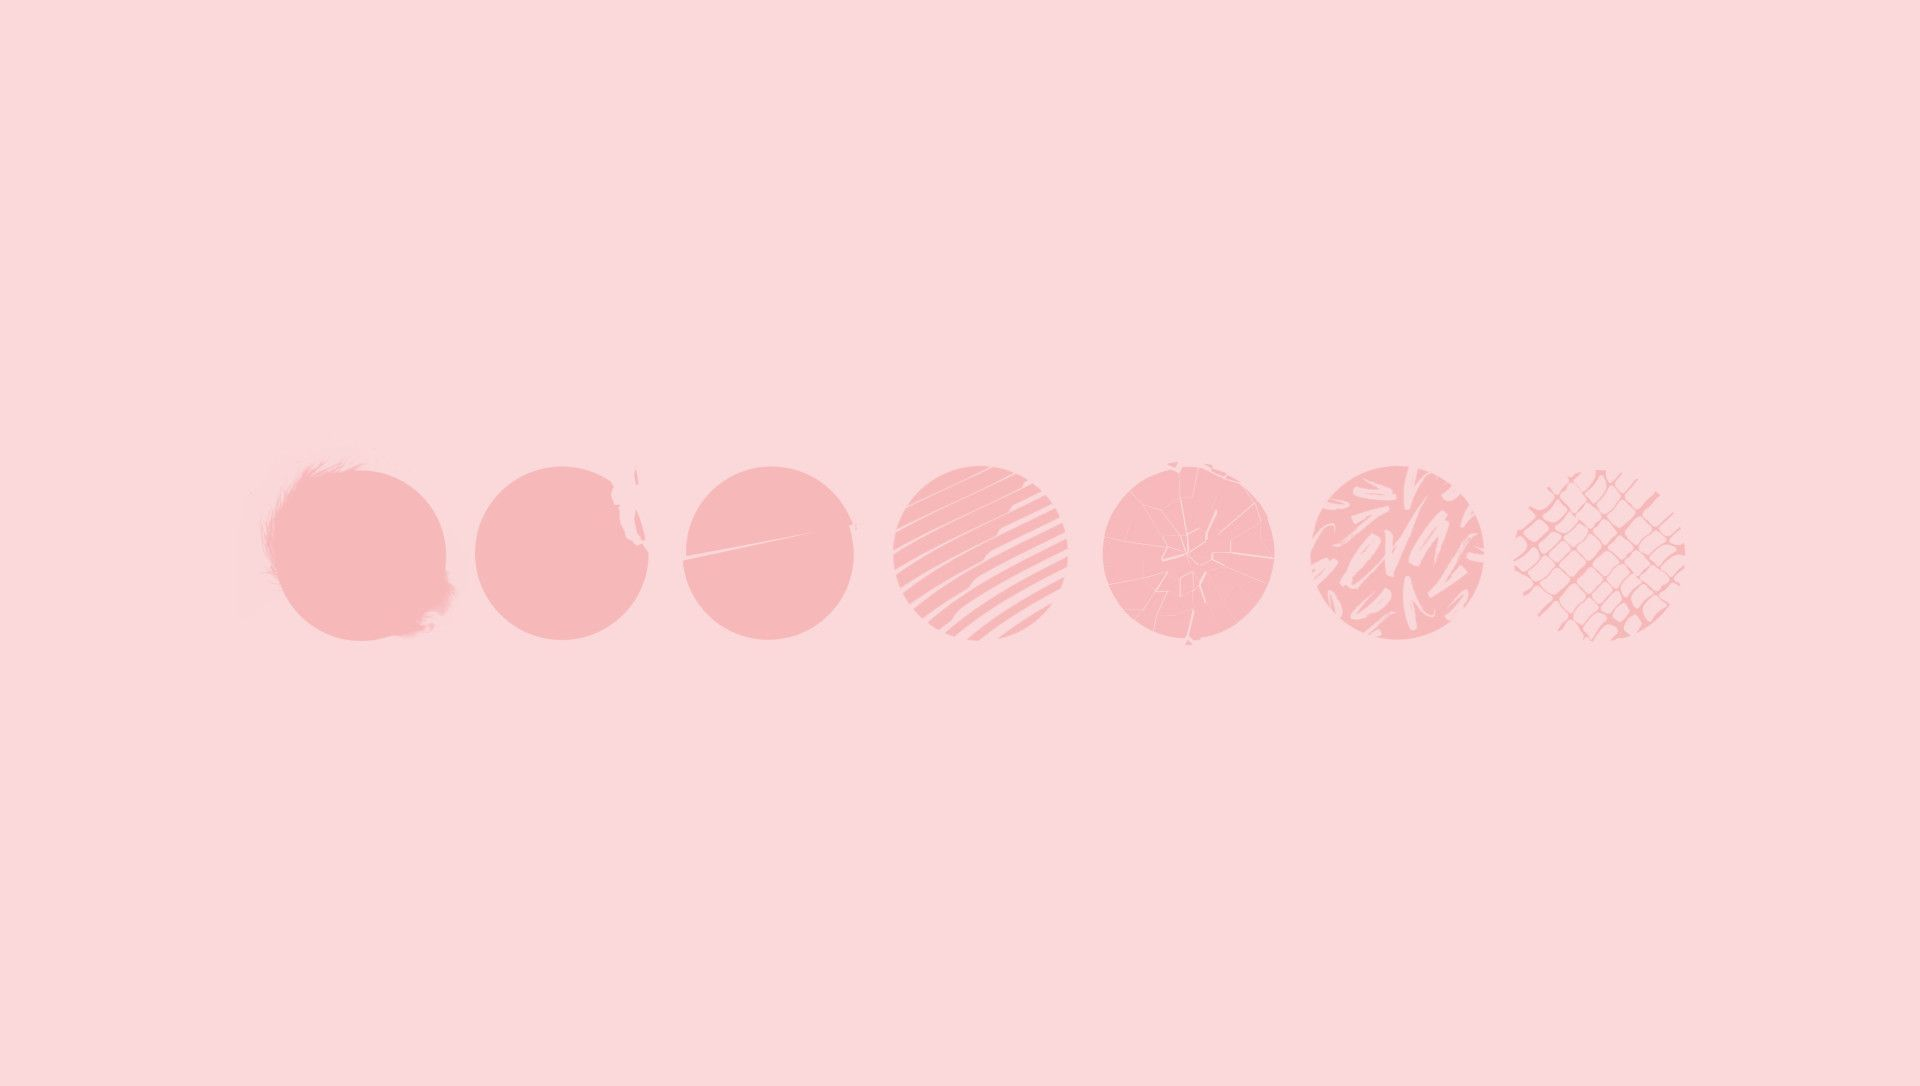 Pastel Pink Aesthetic Wallpaper Desktop Explore more related wallpaper pictures and download it free. pastel pink aesthetic wallpaper desktop